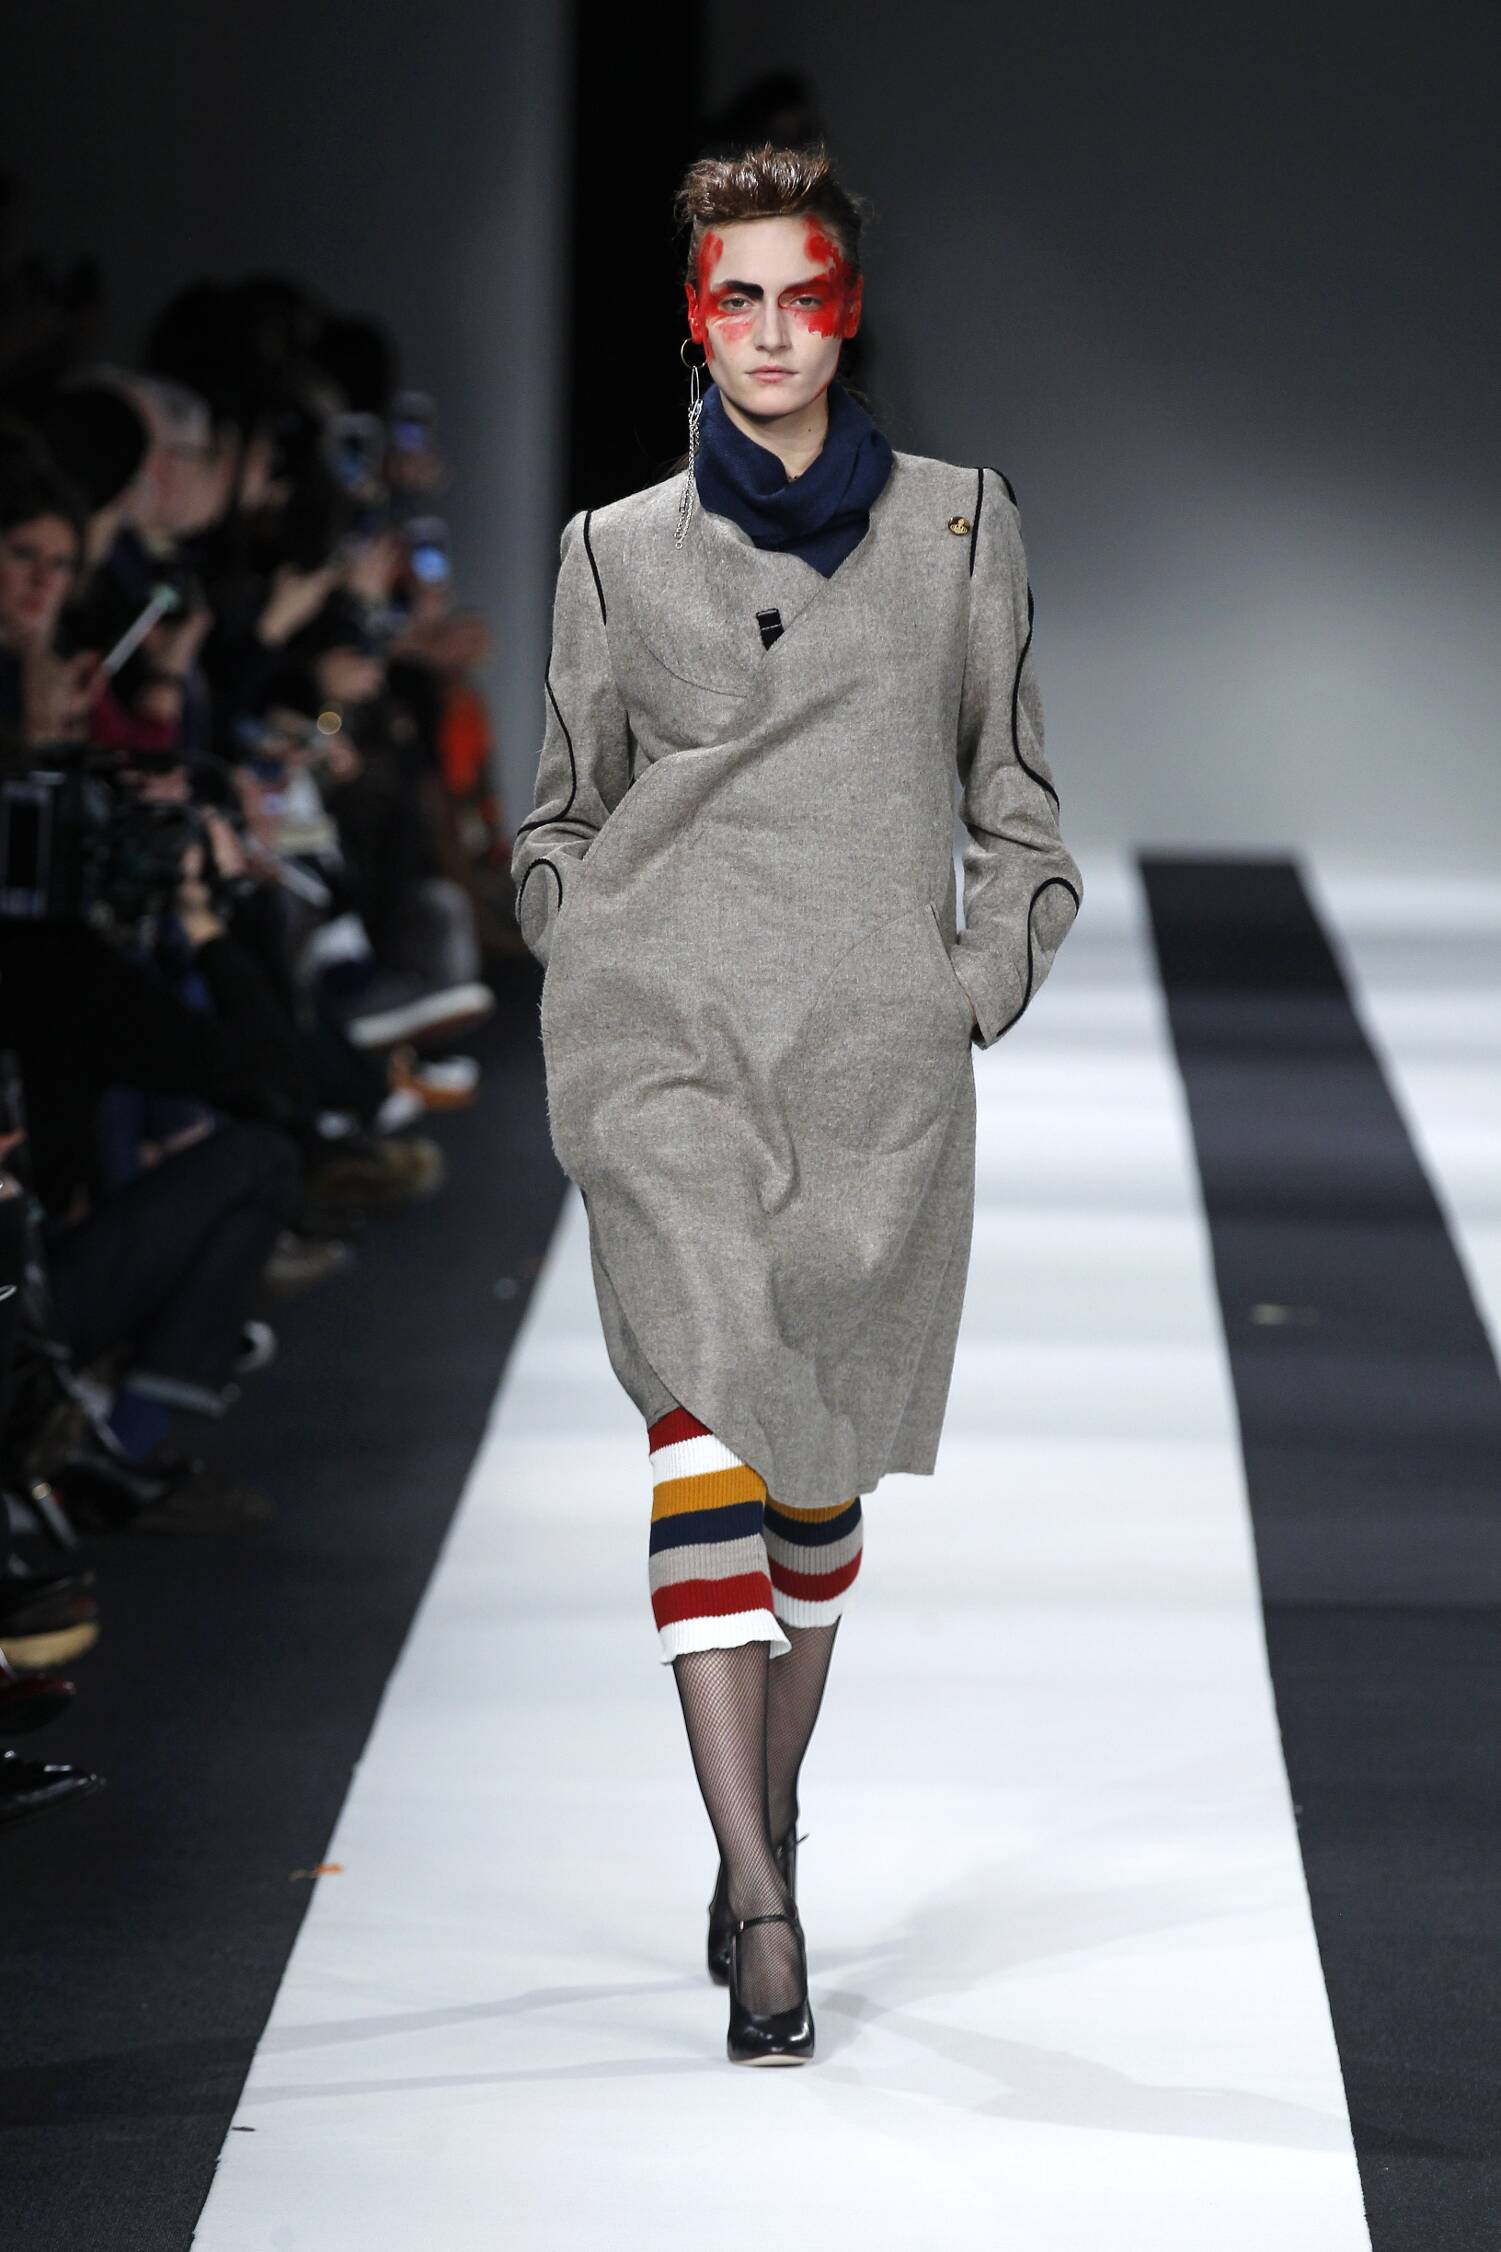 Winter 2015 Fashion Show Vivienne Westwood Red Label Collection